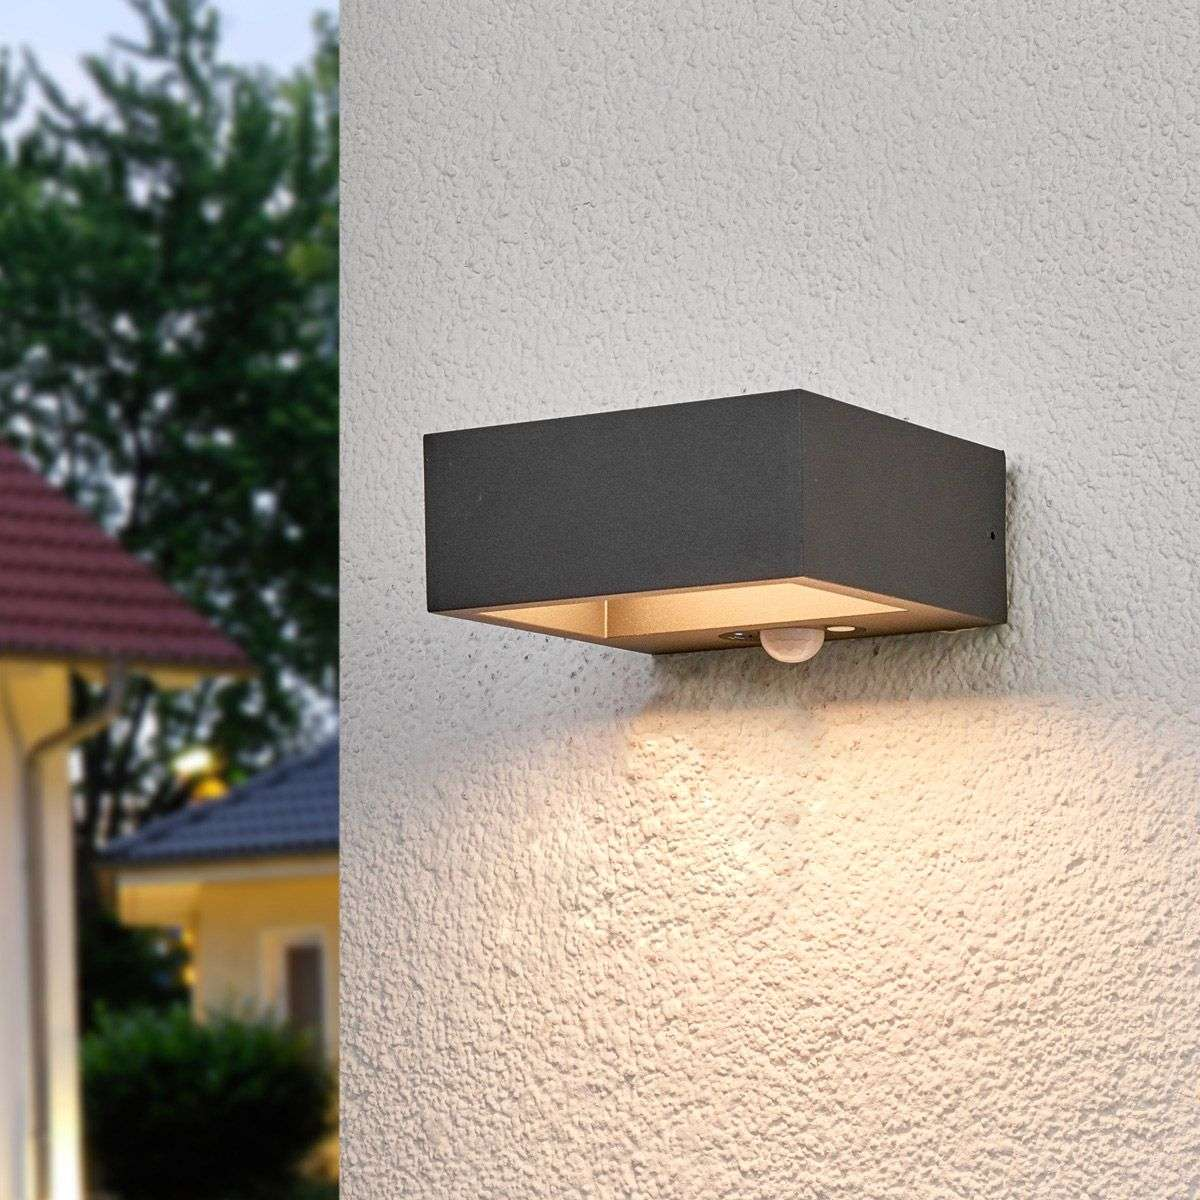 Solar outdoor wall lights uk interior design solar powered led outdoor wall light mahra sensor lights co uk parisarafo Choice Image